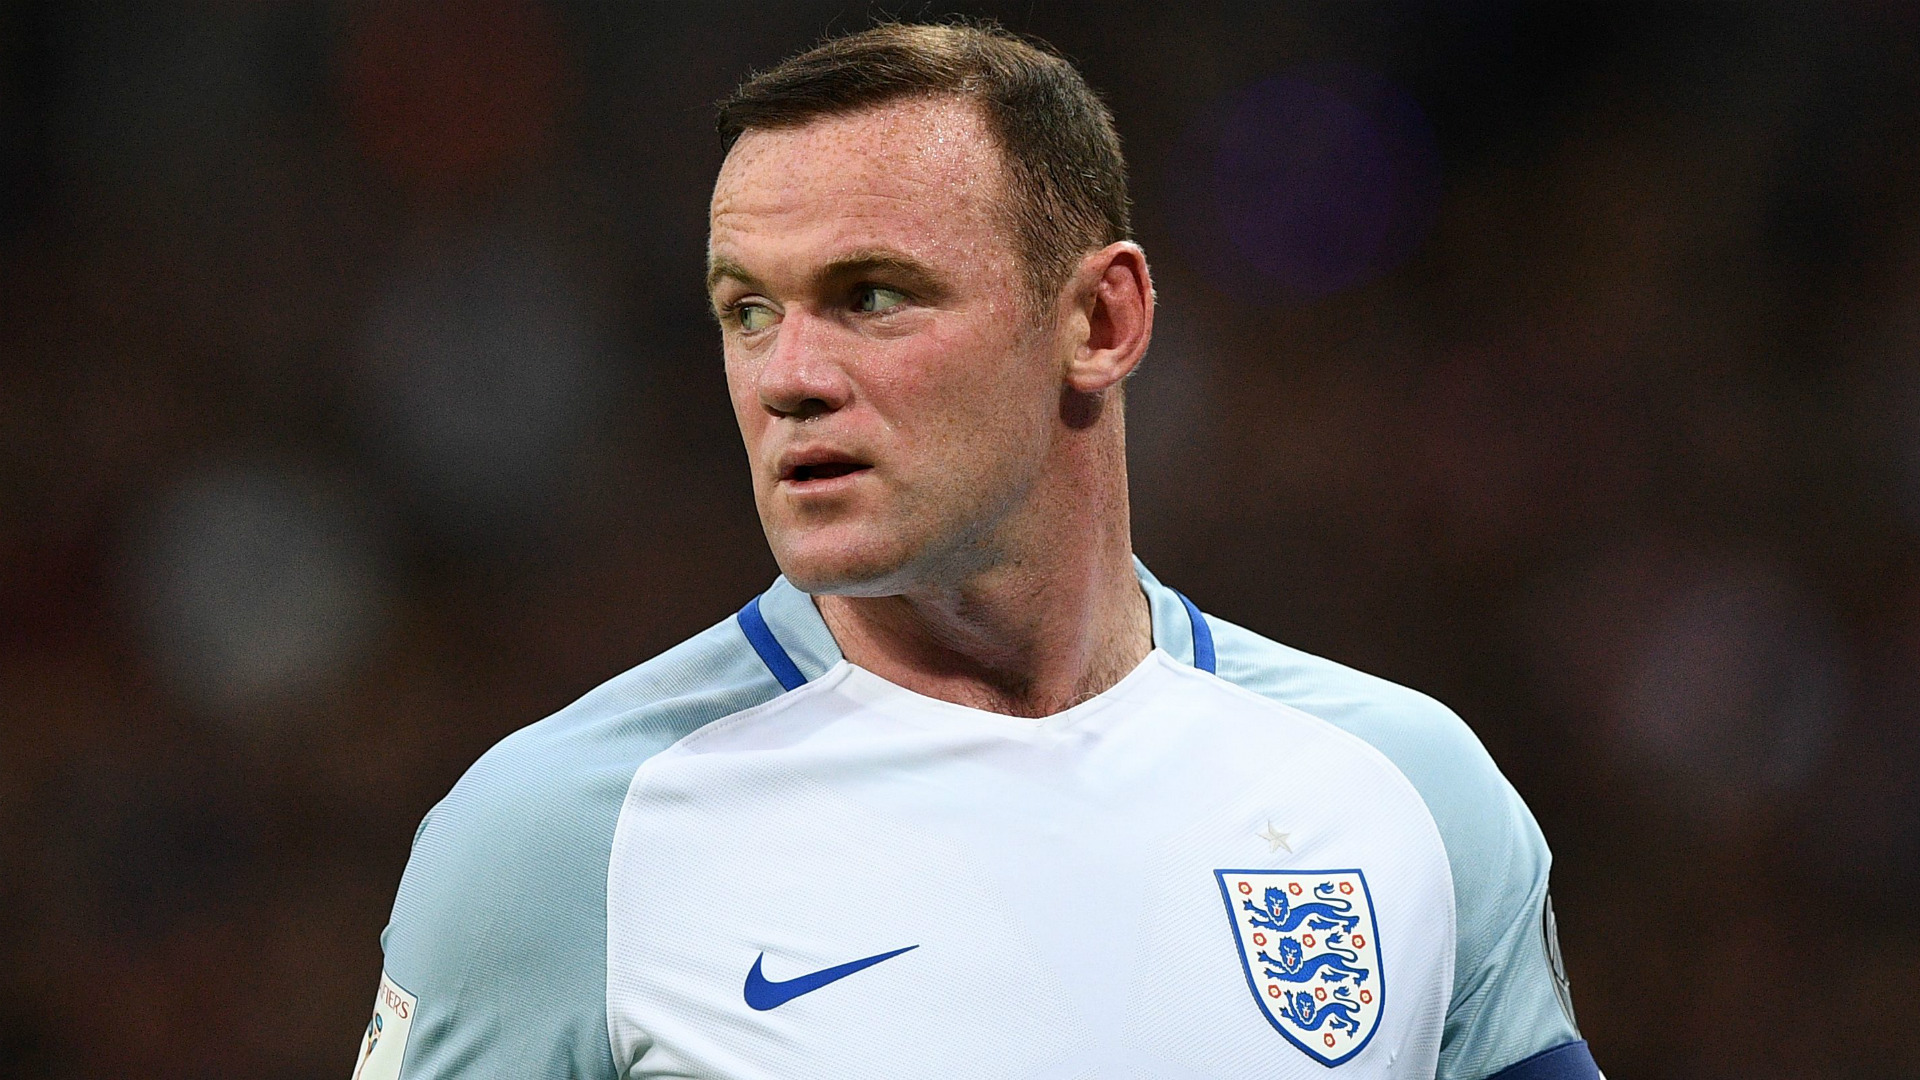 Wayne Rooney's England career in pictures